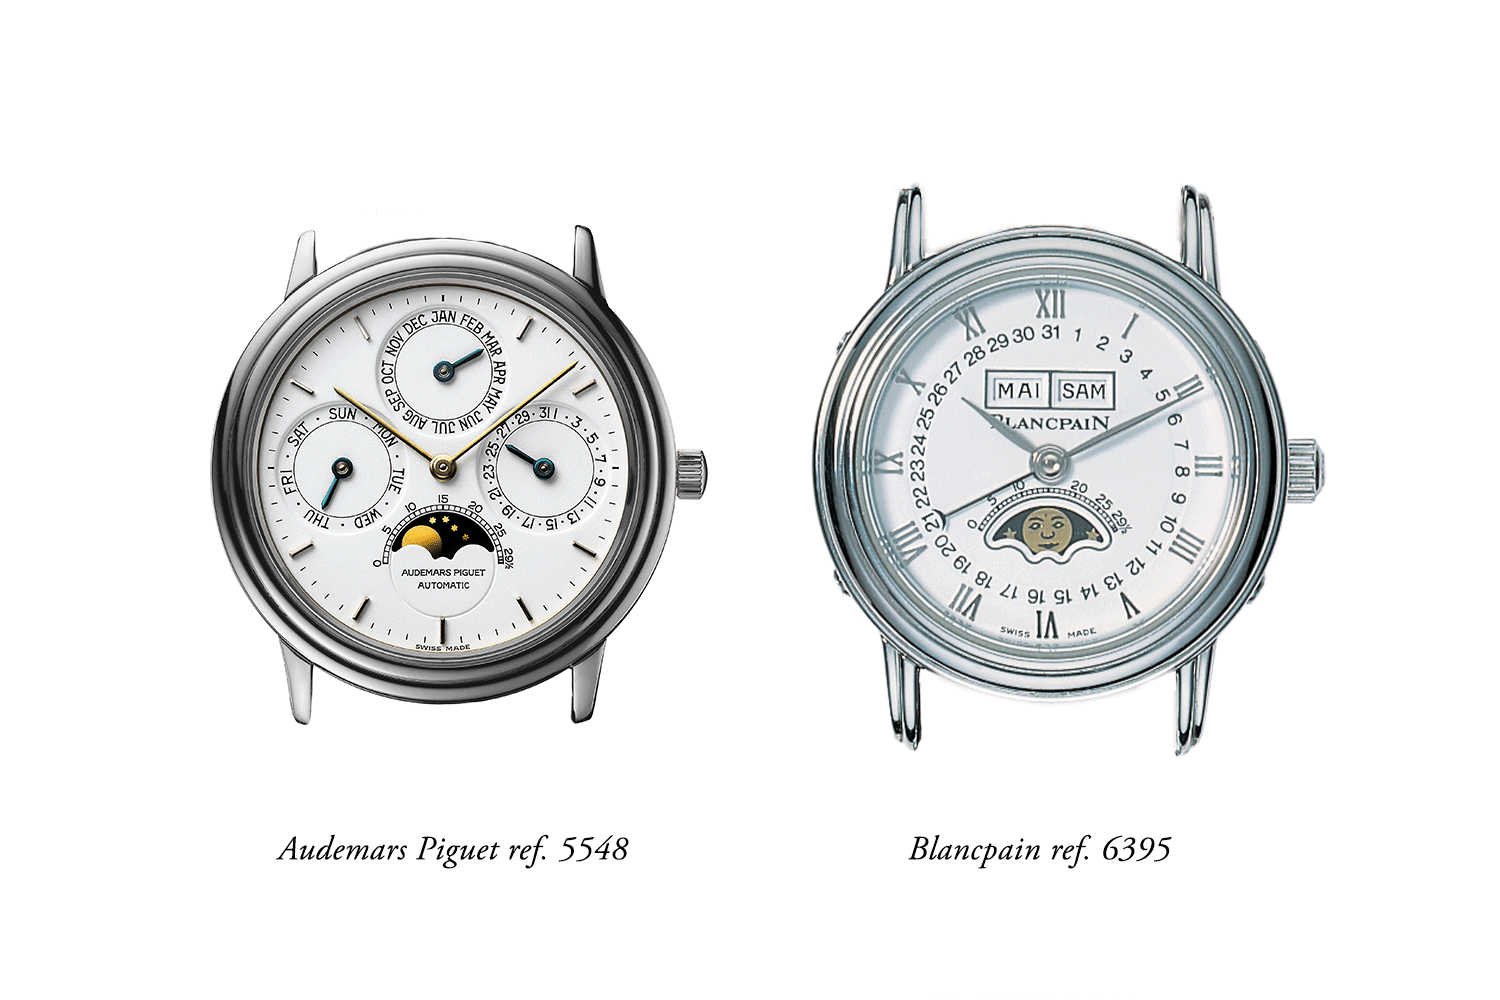 Audemars Piguet's 5548 compared to Blancpain's 6395 Complete Calendar launched in 1983. Note that Blancpain's complete calendar caliber measures 4.98mm in height vs. the AP perpetual calendar caliber which is more than 1mm thinner at 3.95mm. Blancpain would not launch a perpetual calendar until 1991.